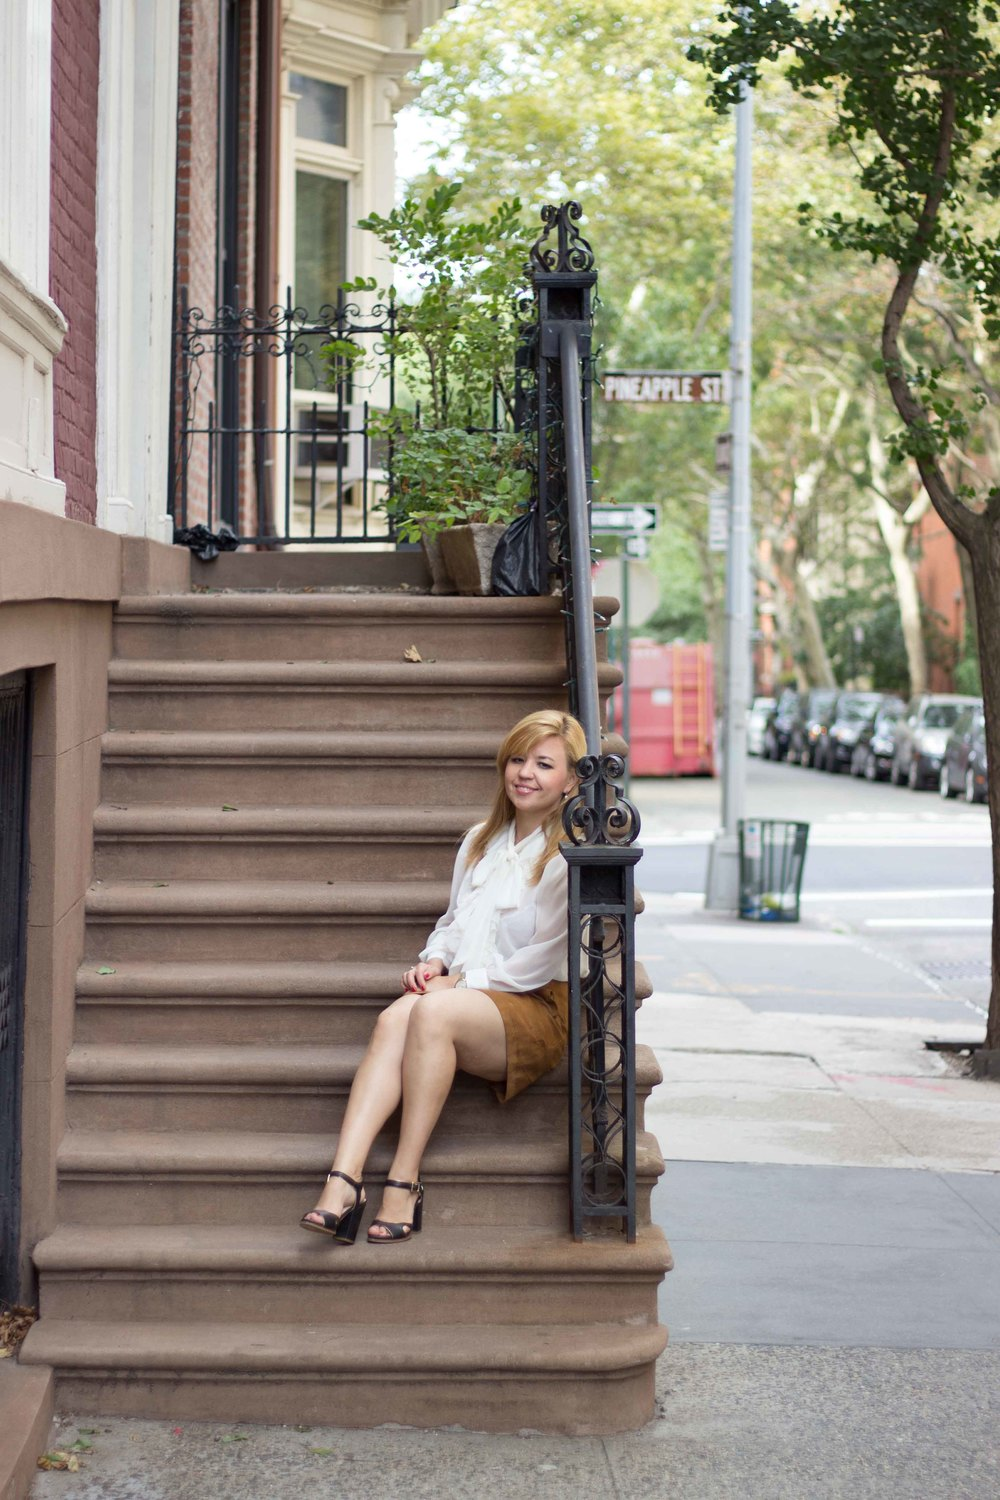 natasha brooklyn downtown brownstone stairs new york irina korrelat.jpg